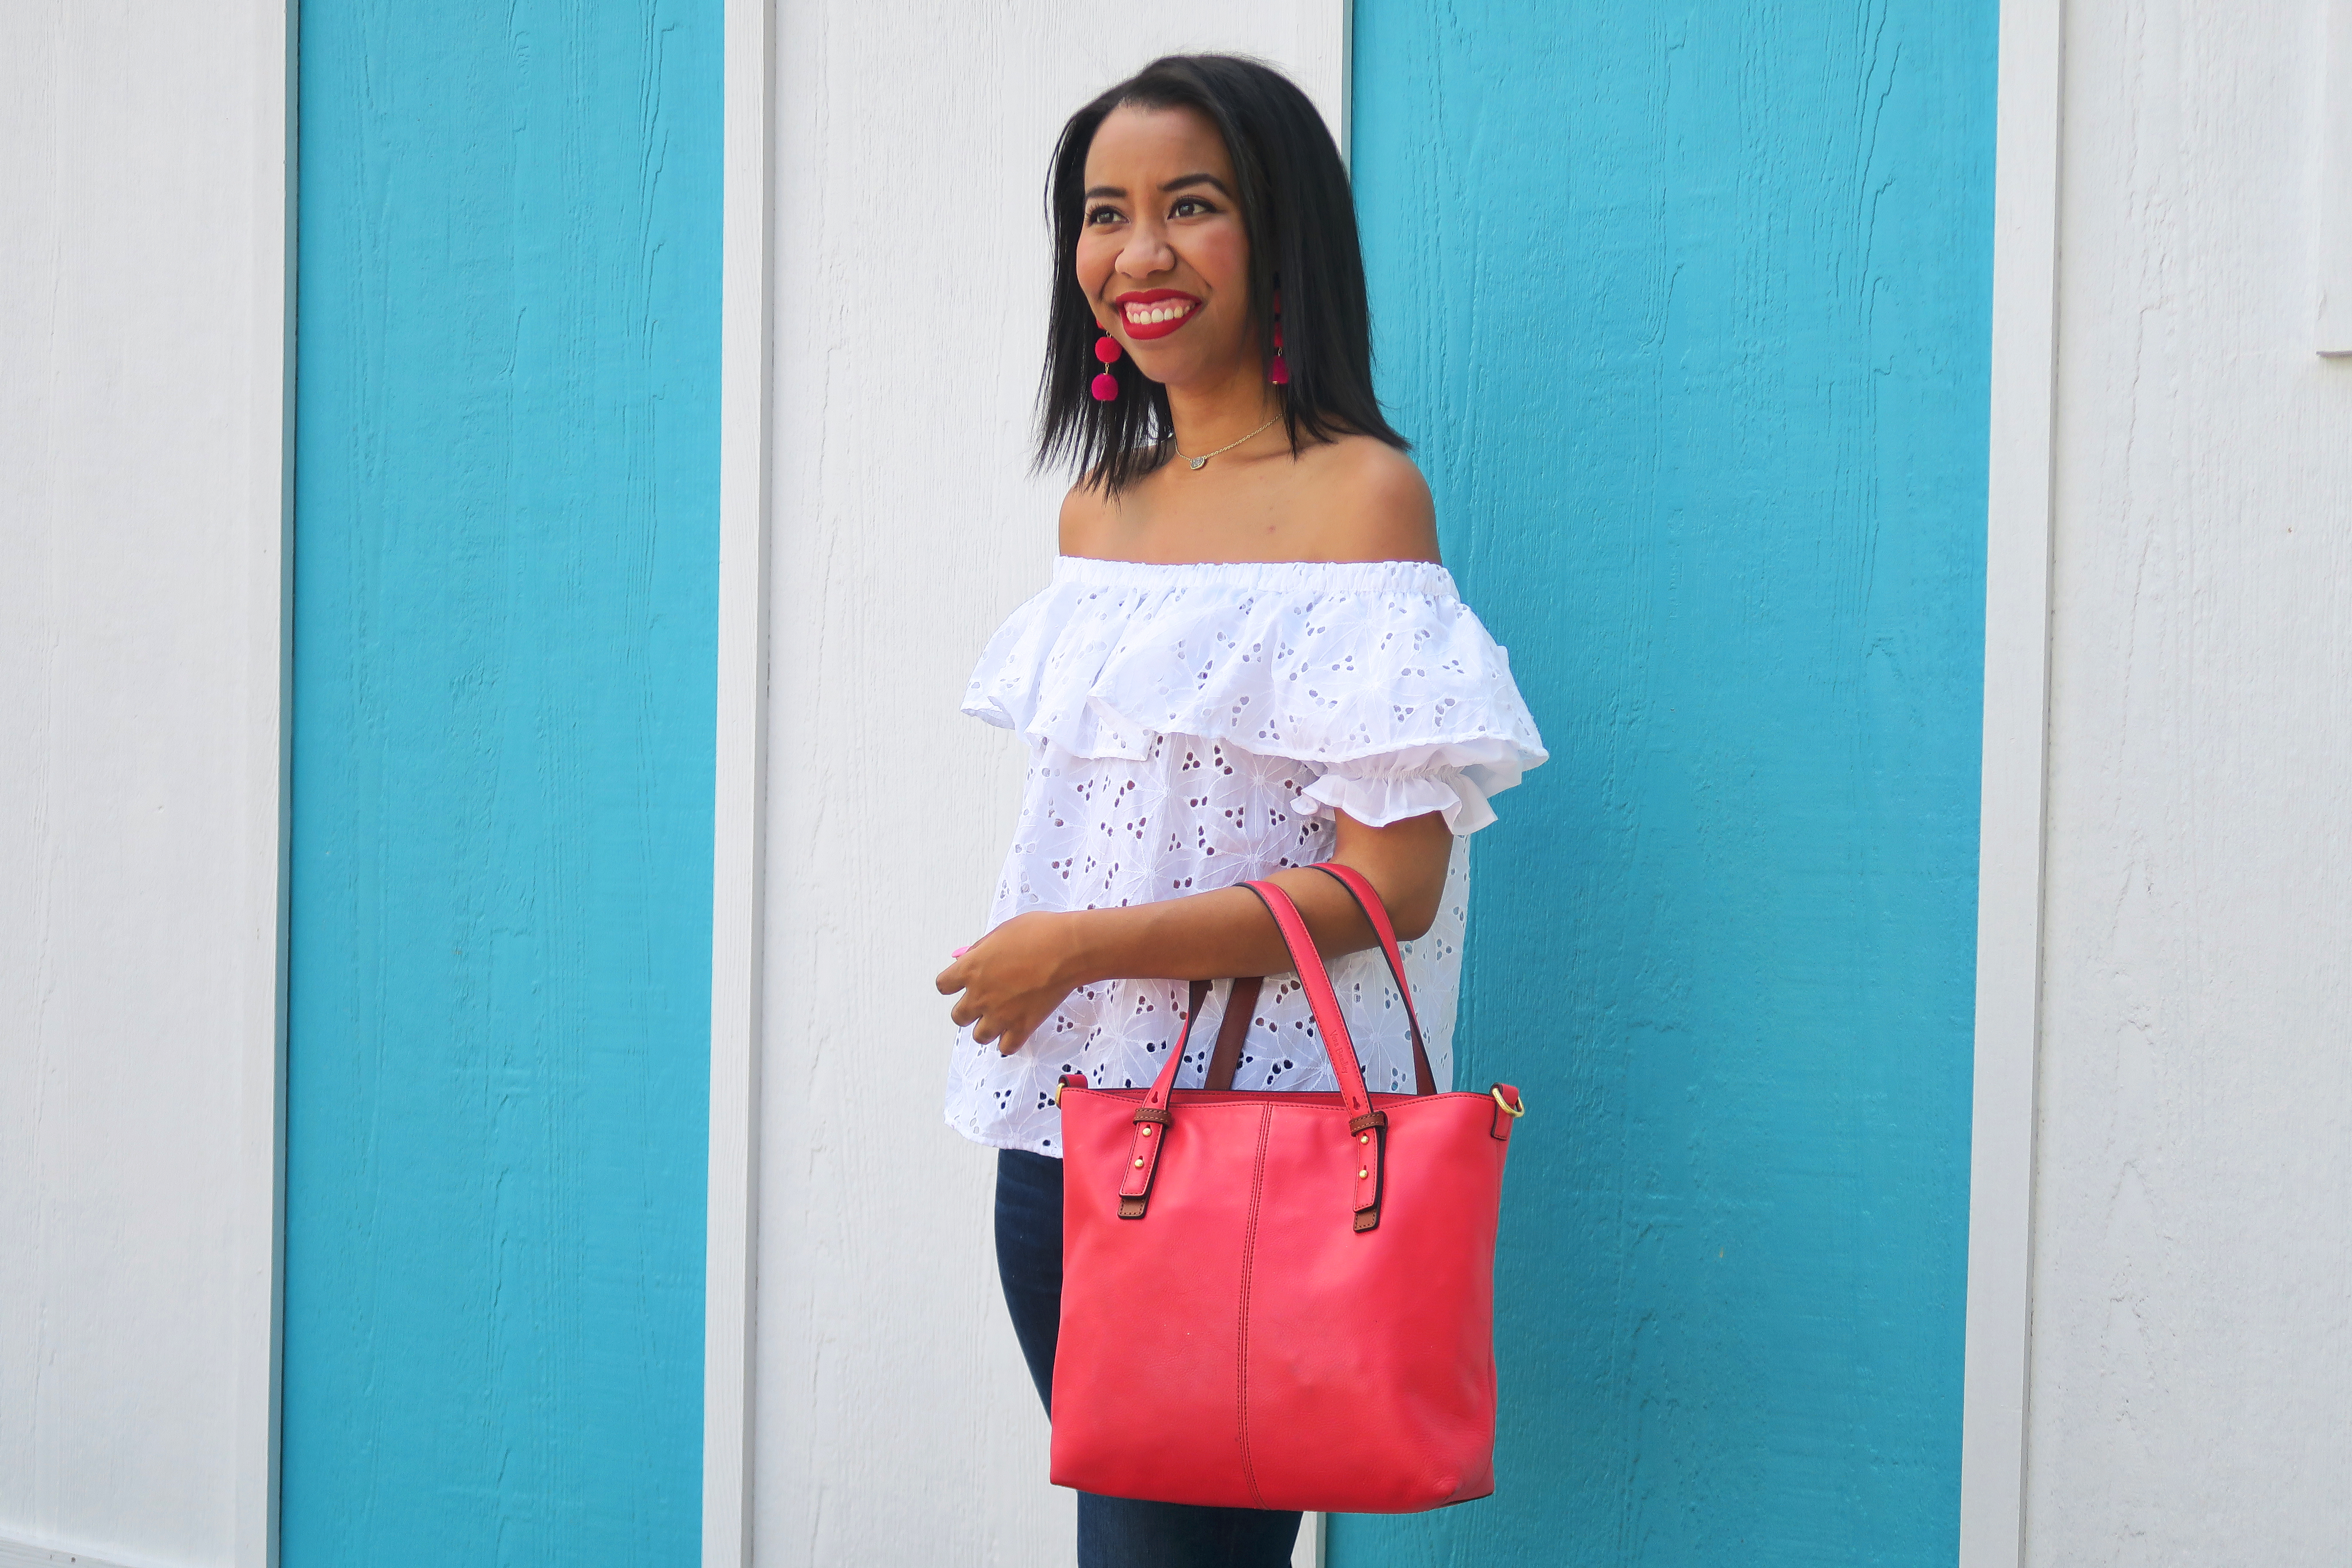 Getting dressed for 4th of July? Fashion blogger, What Nicole Wore, styles a white eyelet top that's perfect for July 4 and beyond.